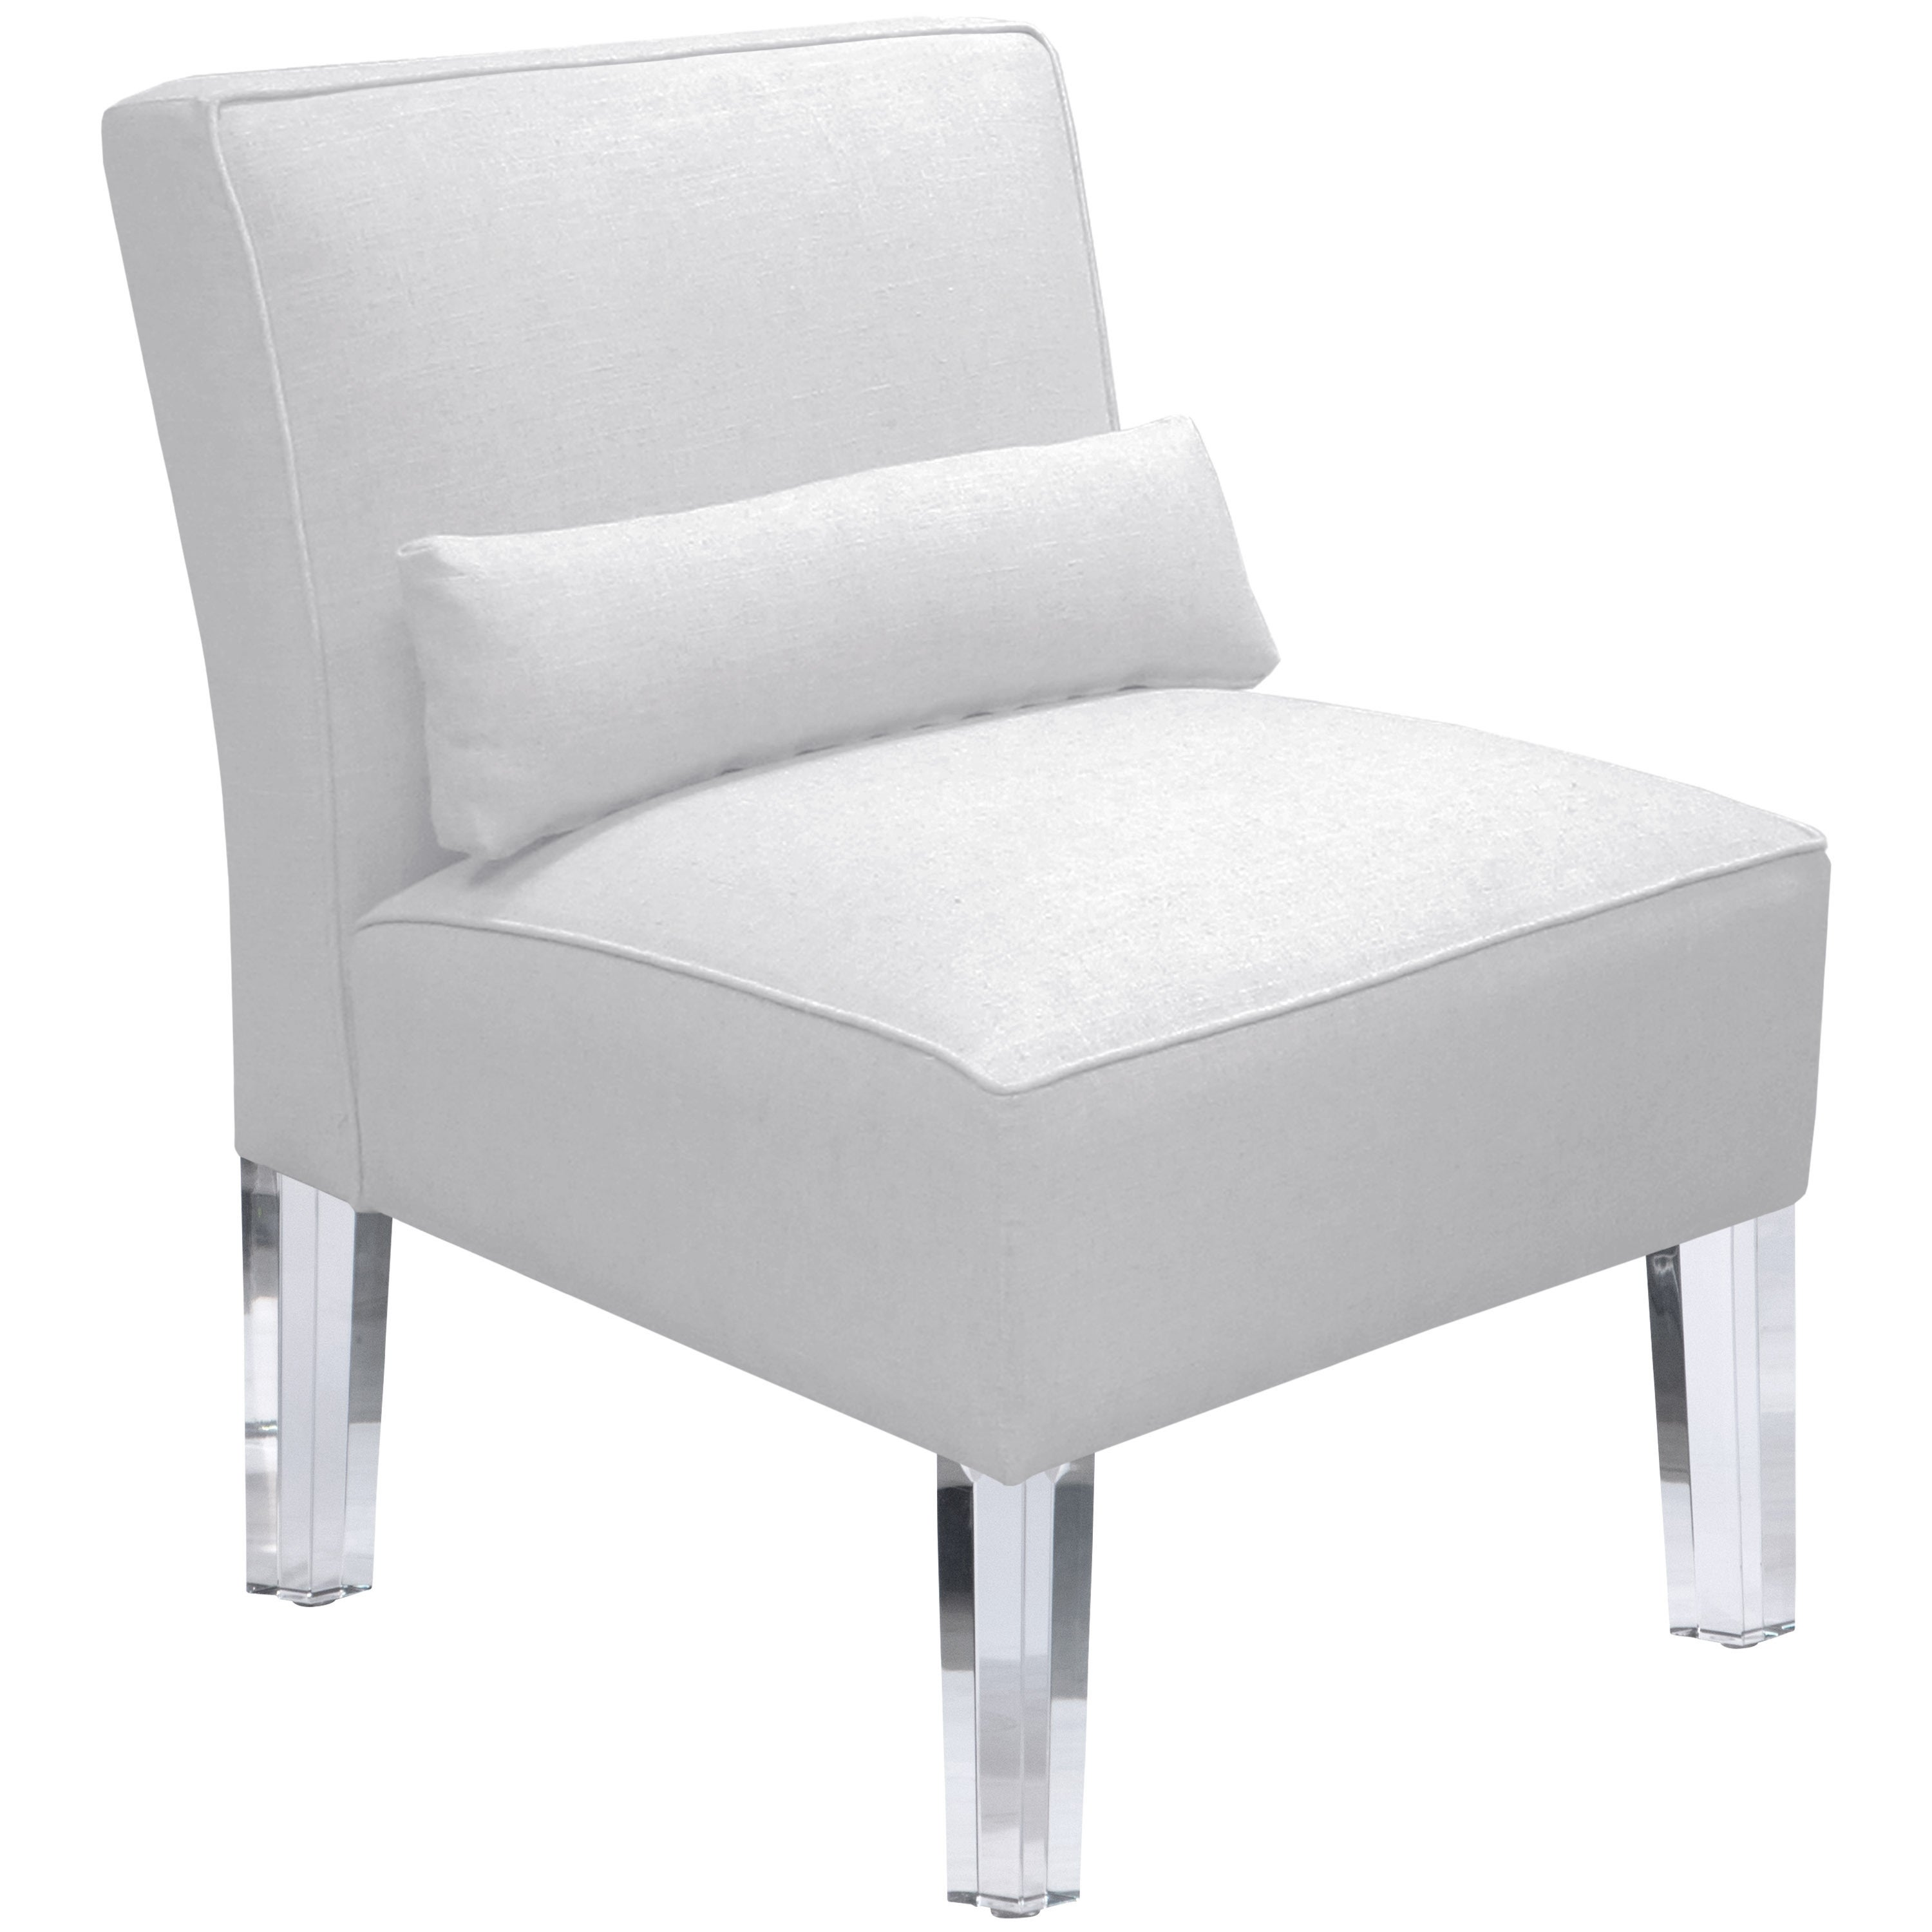 Shop skyline furniture duck white armless chair with acrylic legs on sale free shipping today overstock com 12683436